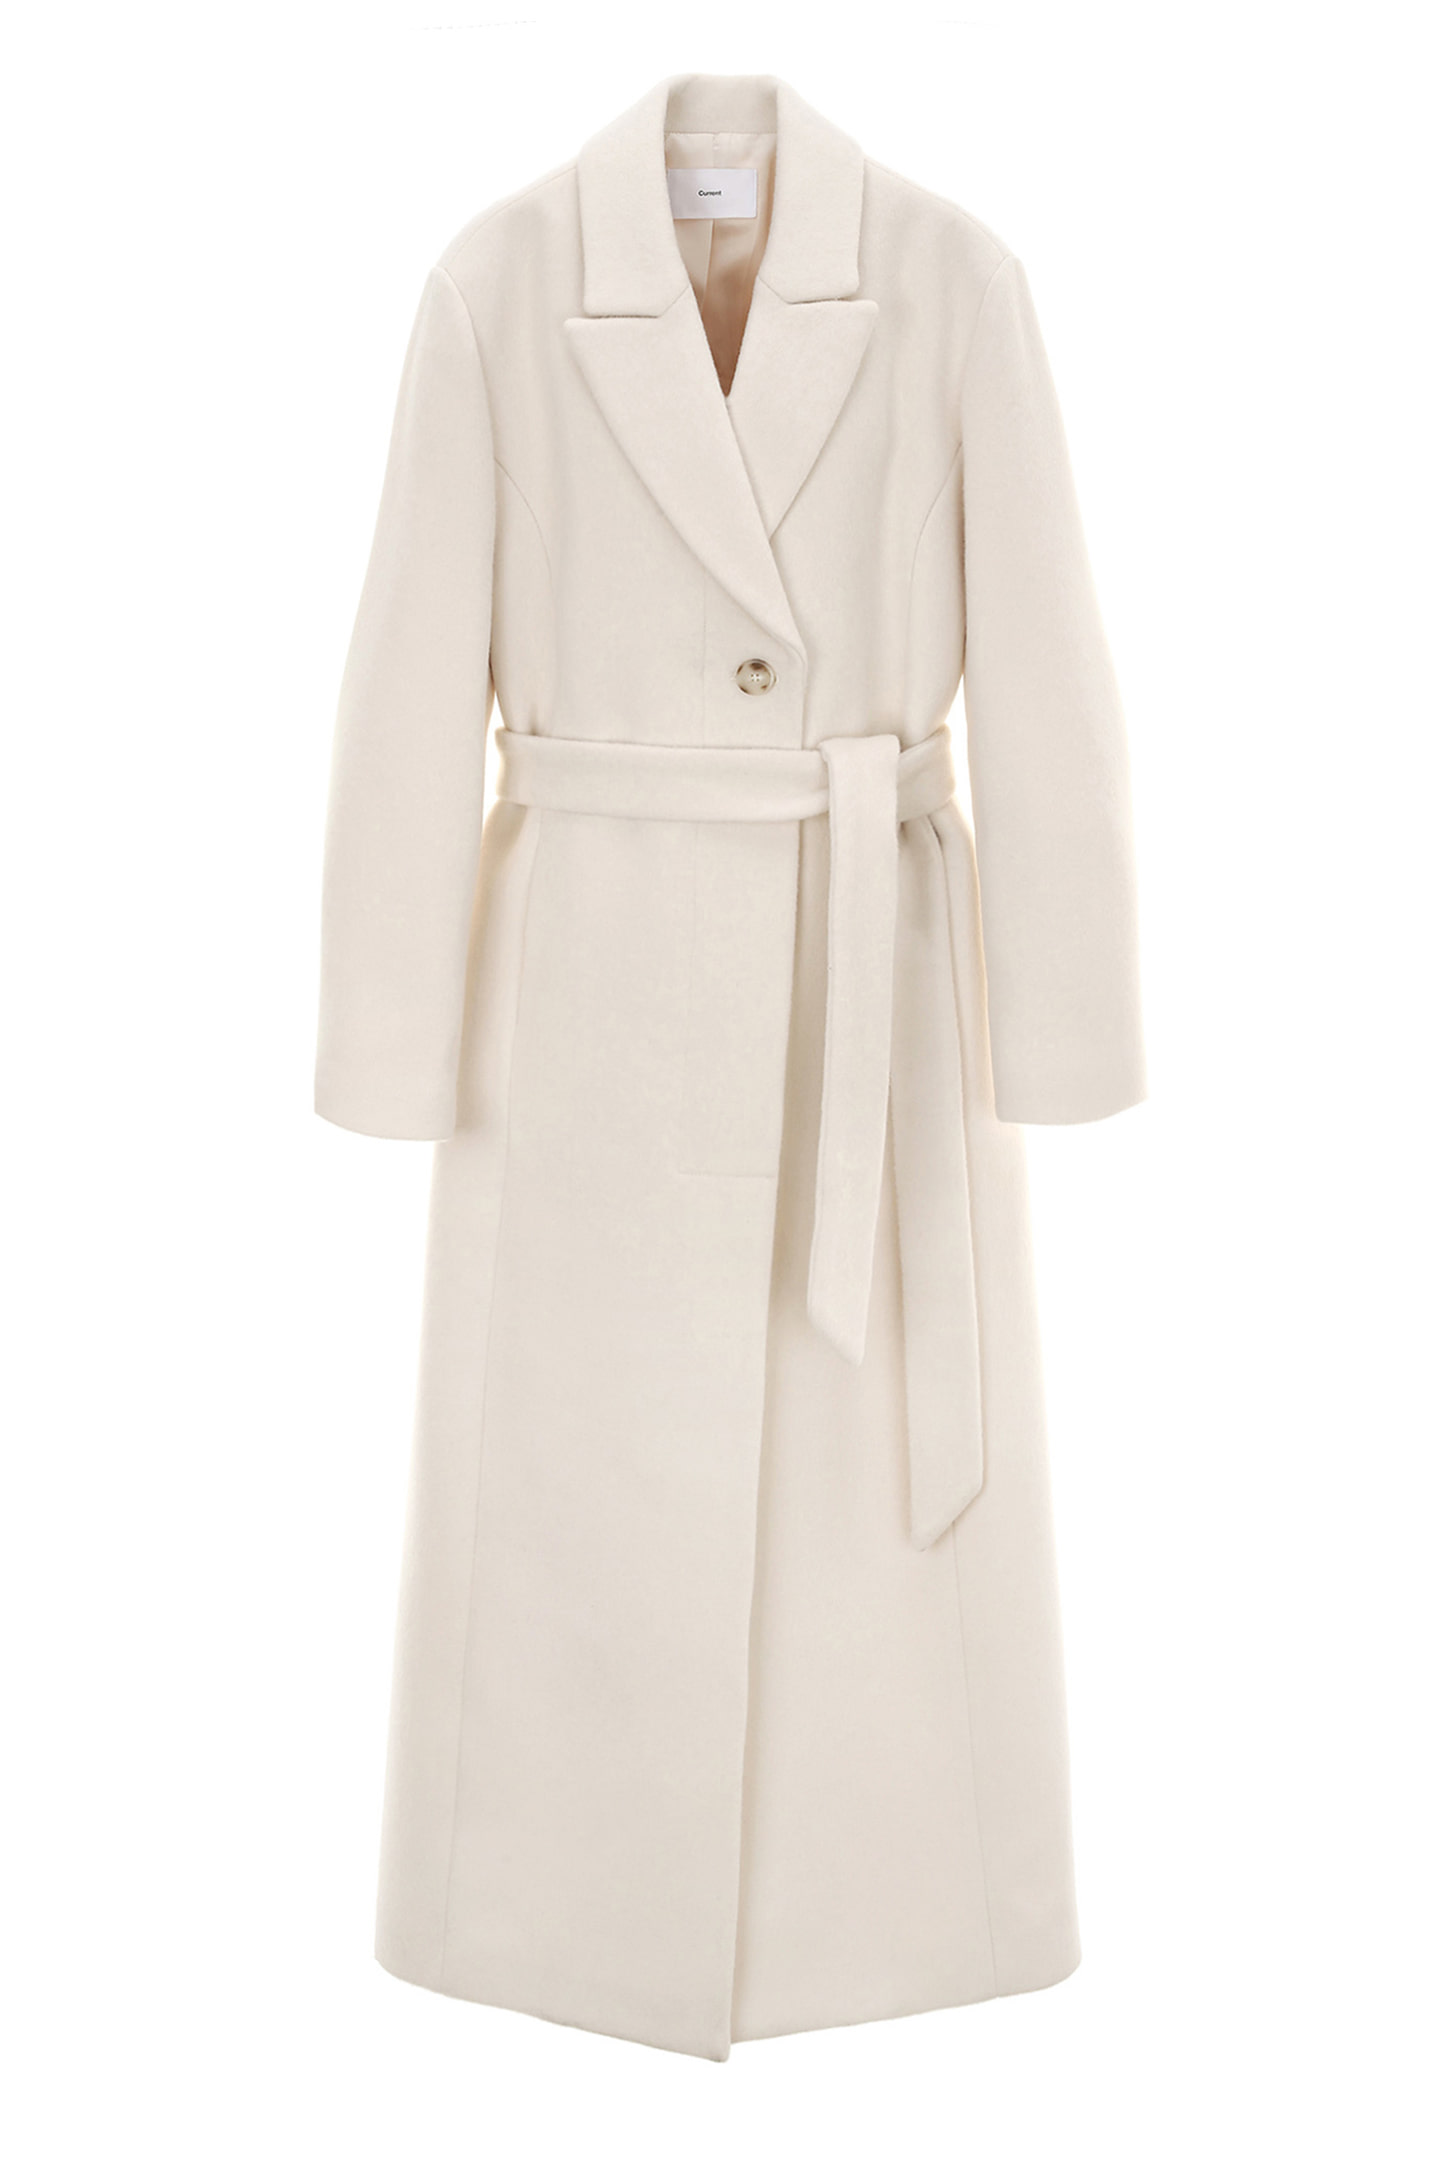 Belted Single Coat Women [Cream]